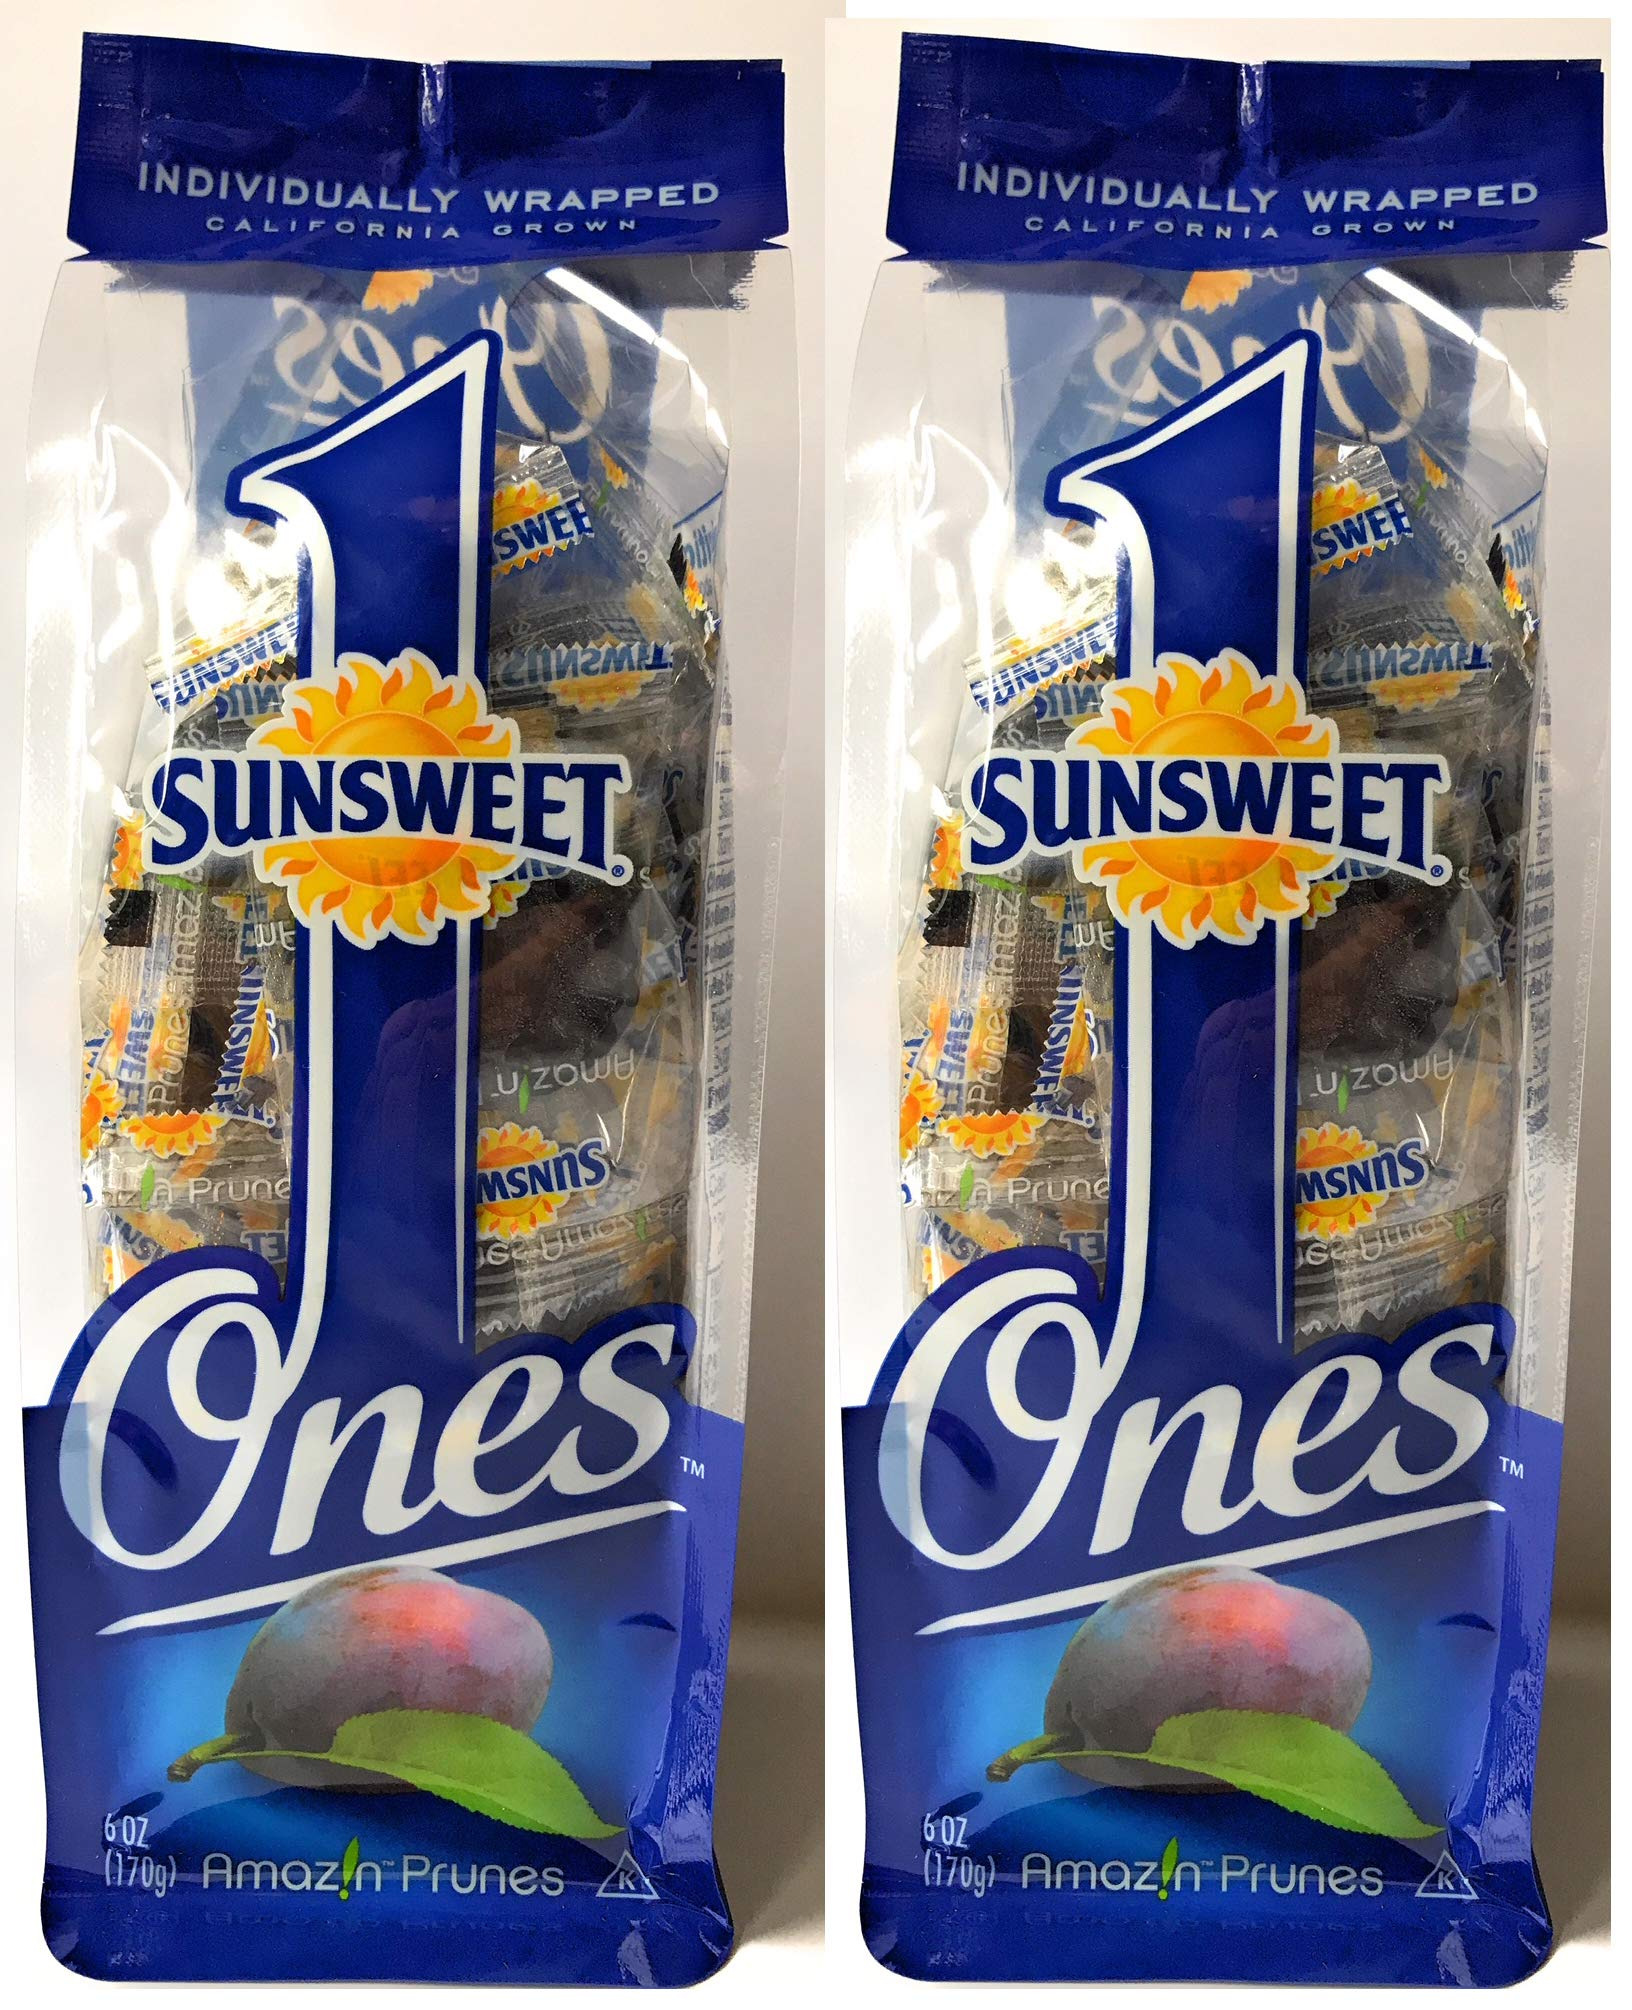 Sunsweet Ones California Individually Wrapped Pitted Prunes - 2 Packages (each package is 6 ounces) PLUS a Prune Recipe - GREAT VALUE!